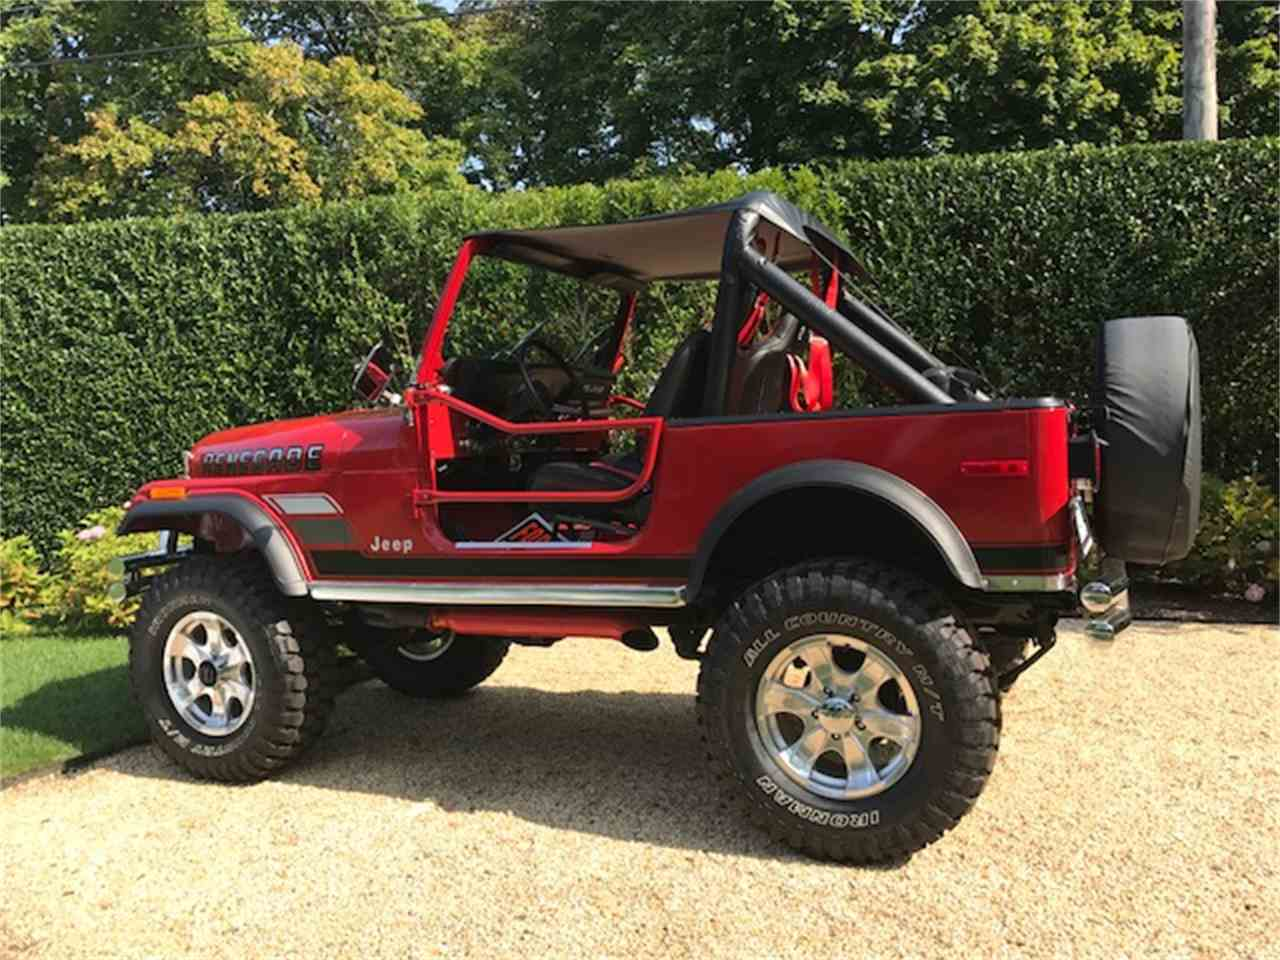 Large Picture of 1980 Jeep Wrangler located in Sag Harbor New York - LUVJ